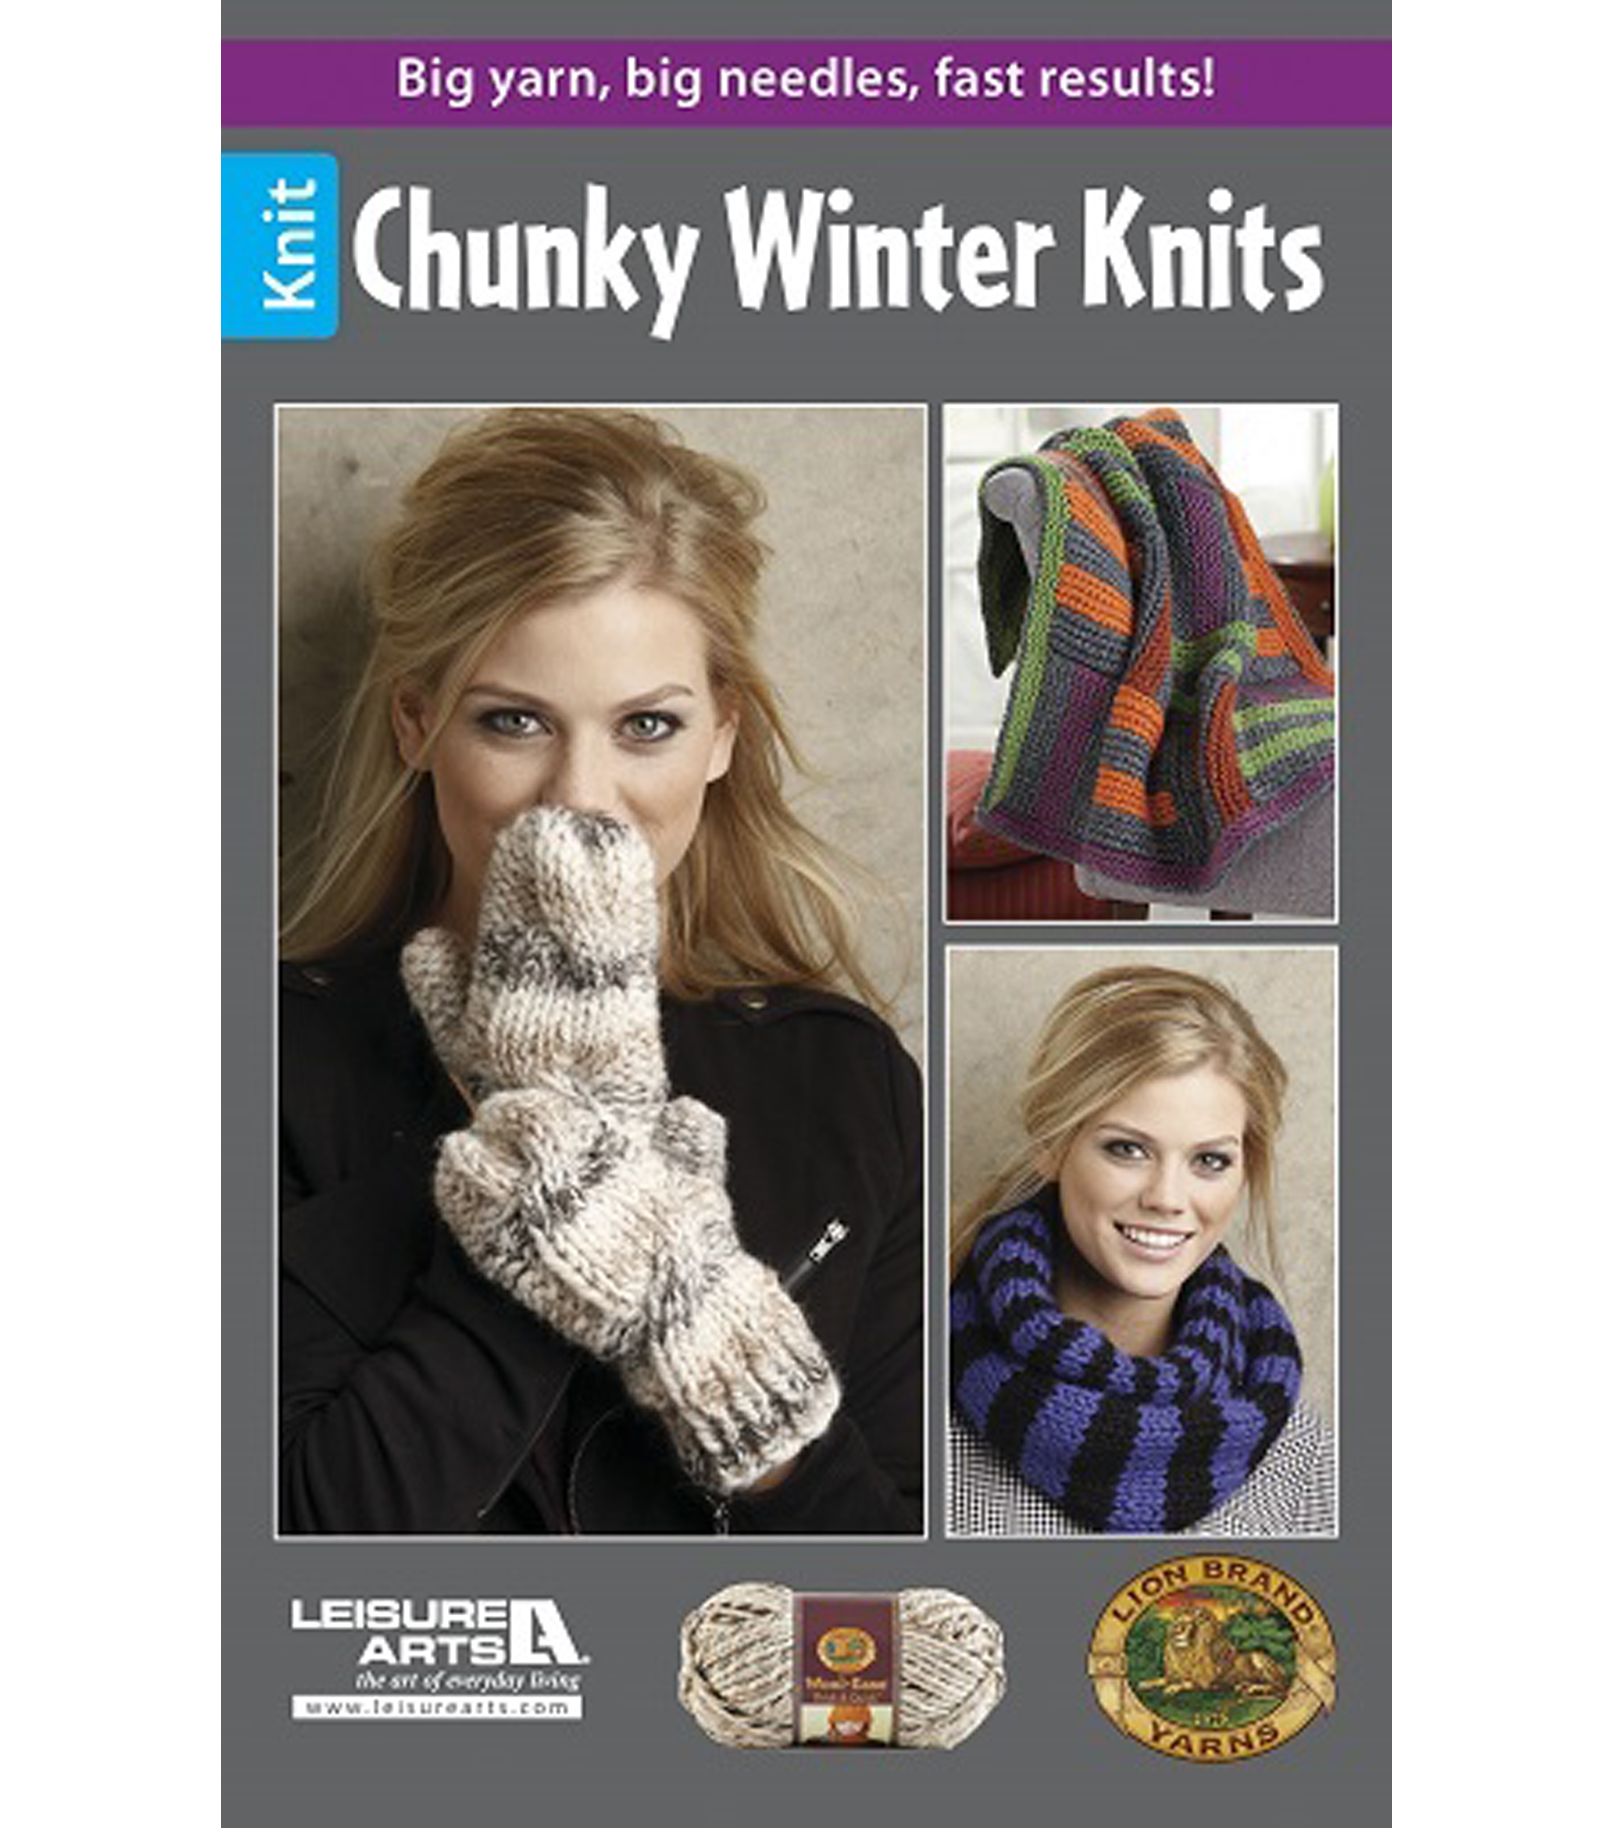 Chunky Winter Knits